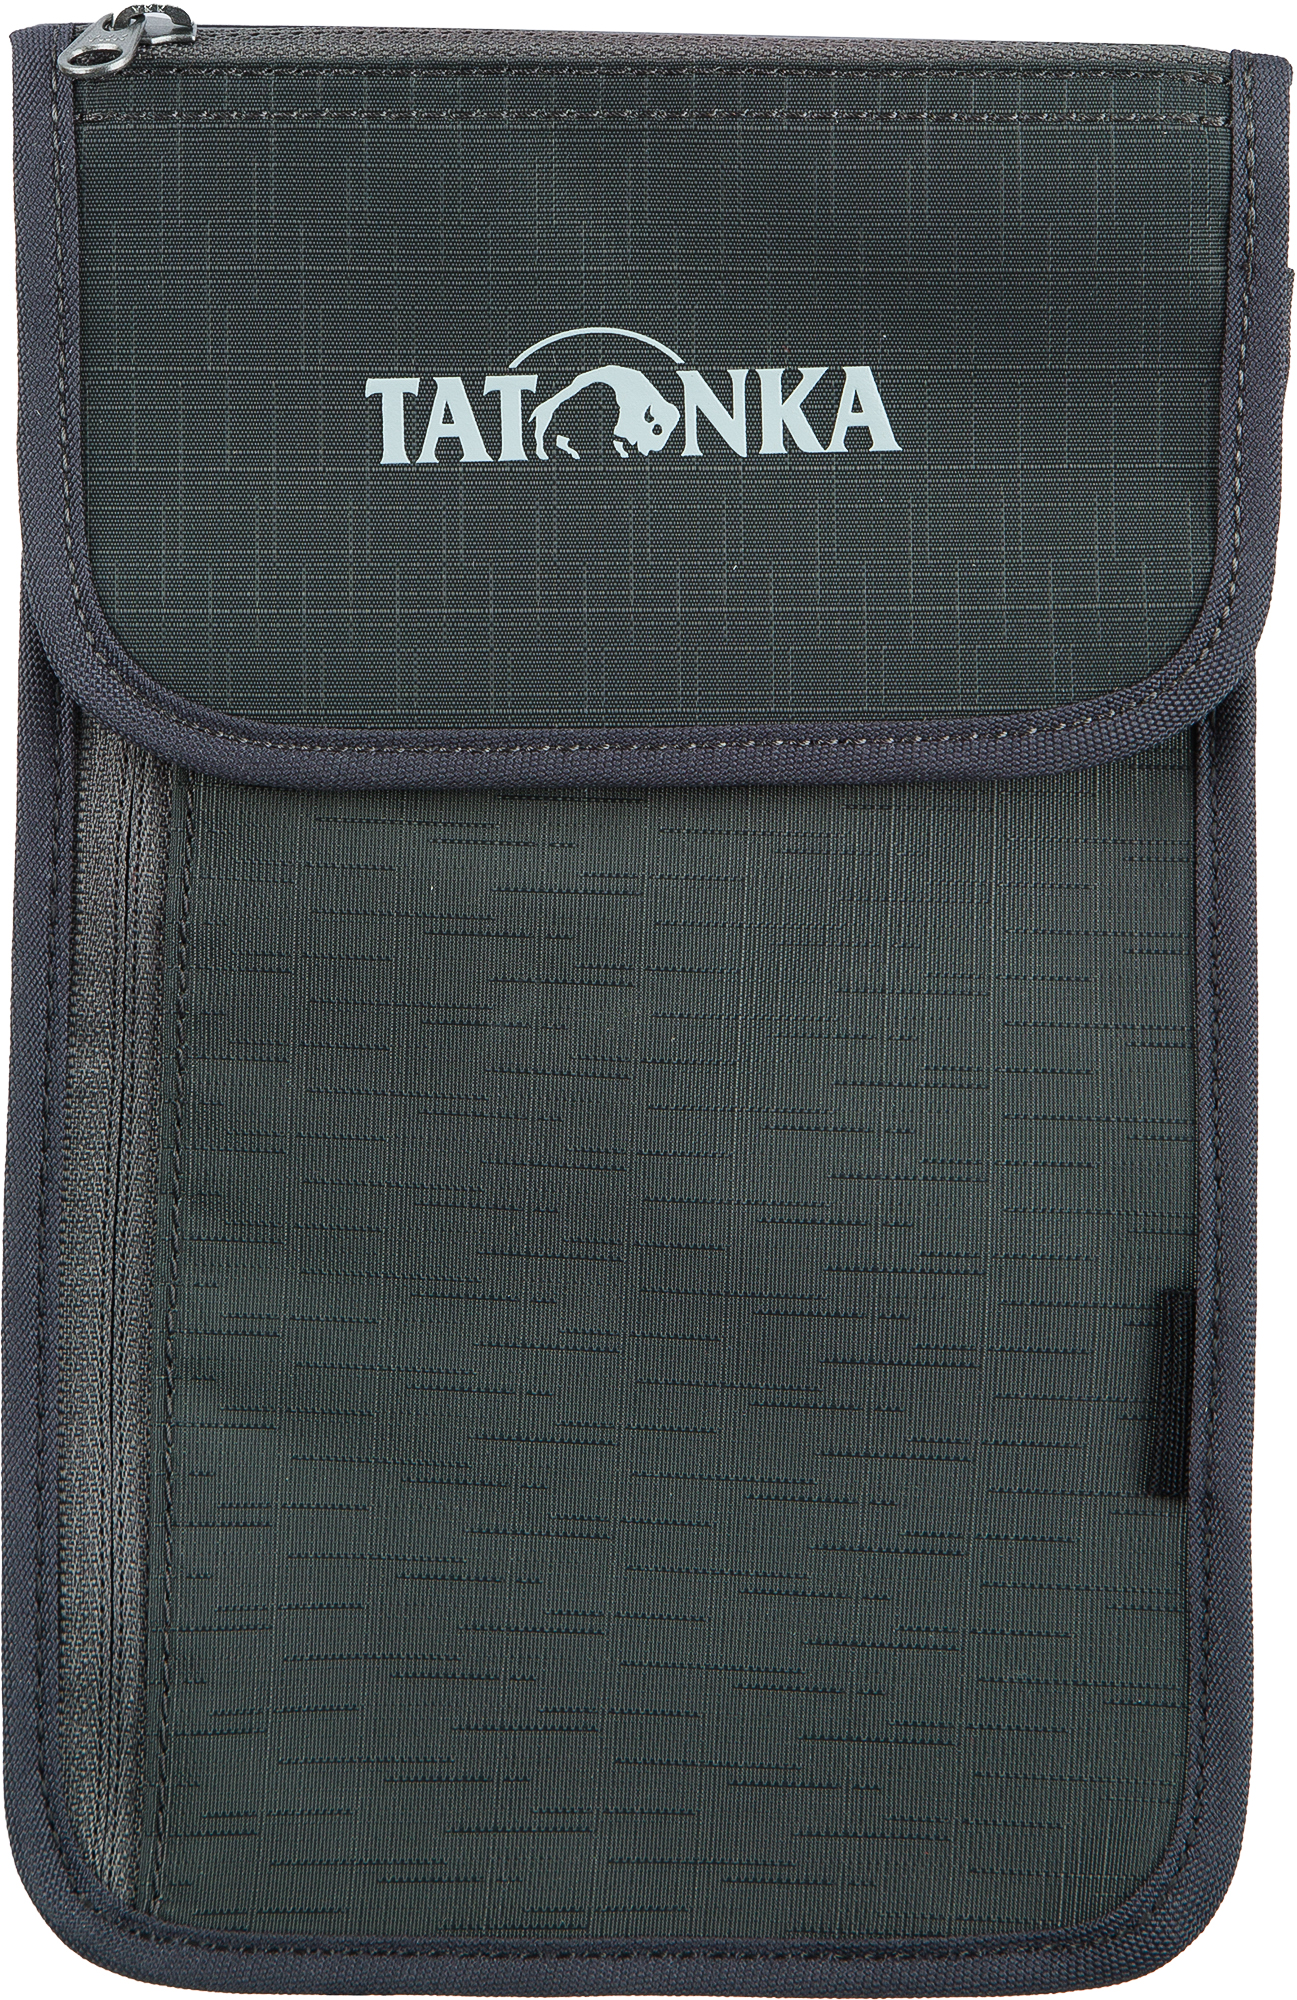 Tatonka Кошелек Tatonka NECK WALLET кошелек tatonka travel wallet цвет синий 2915 004